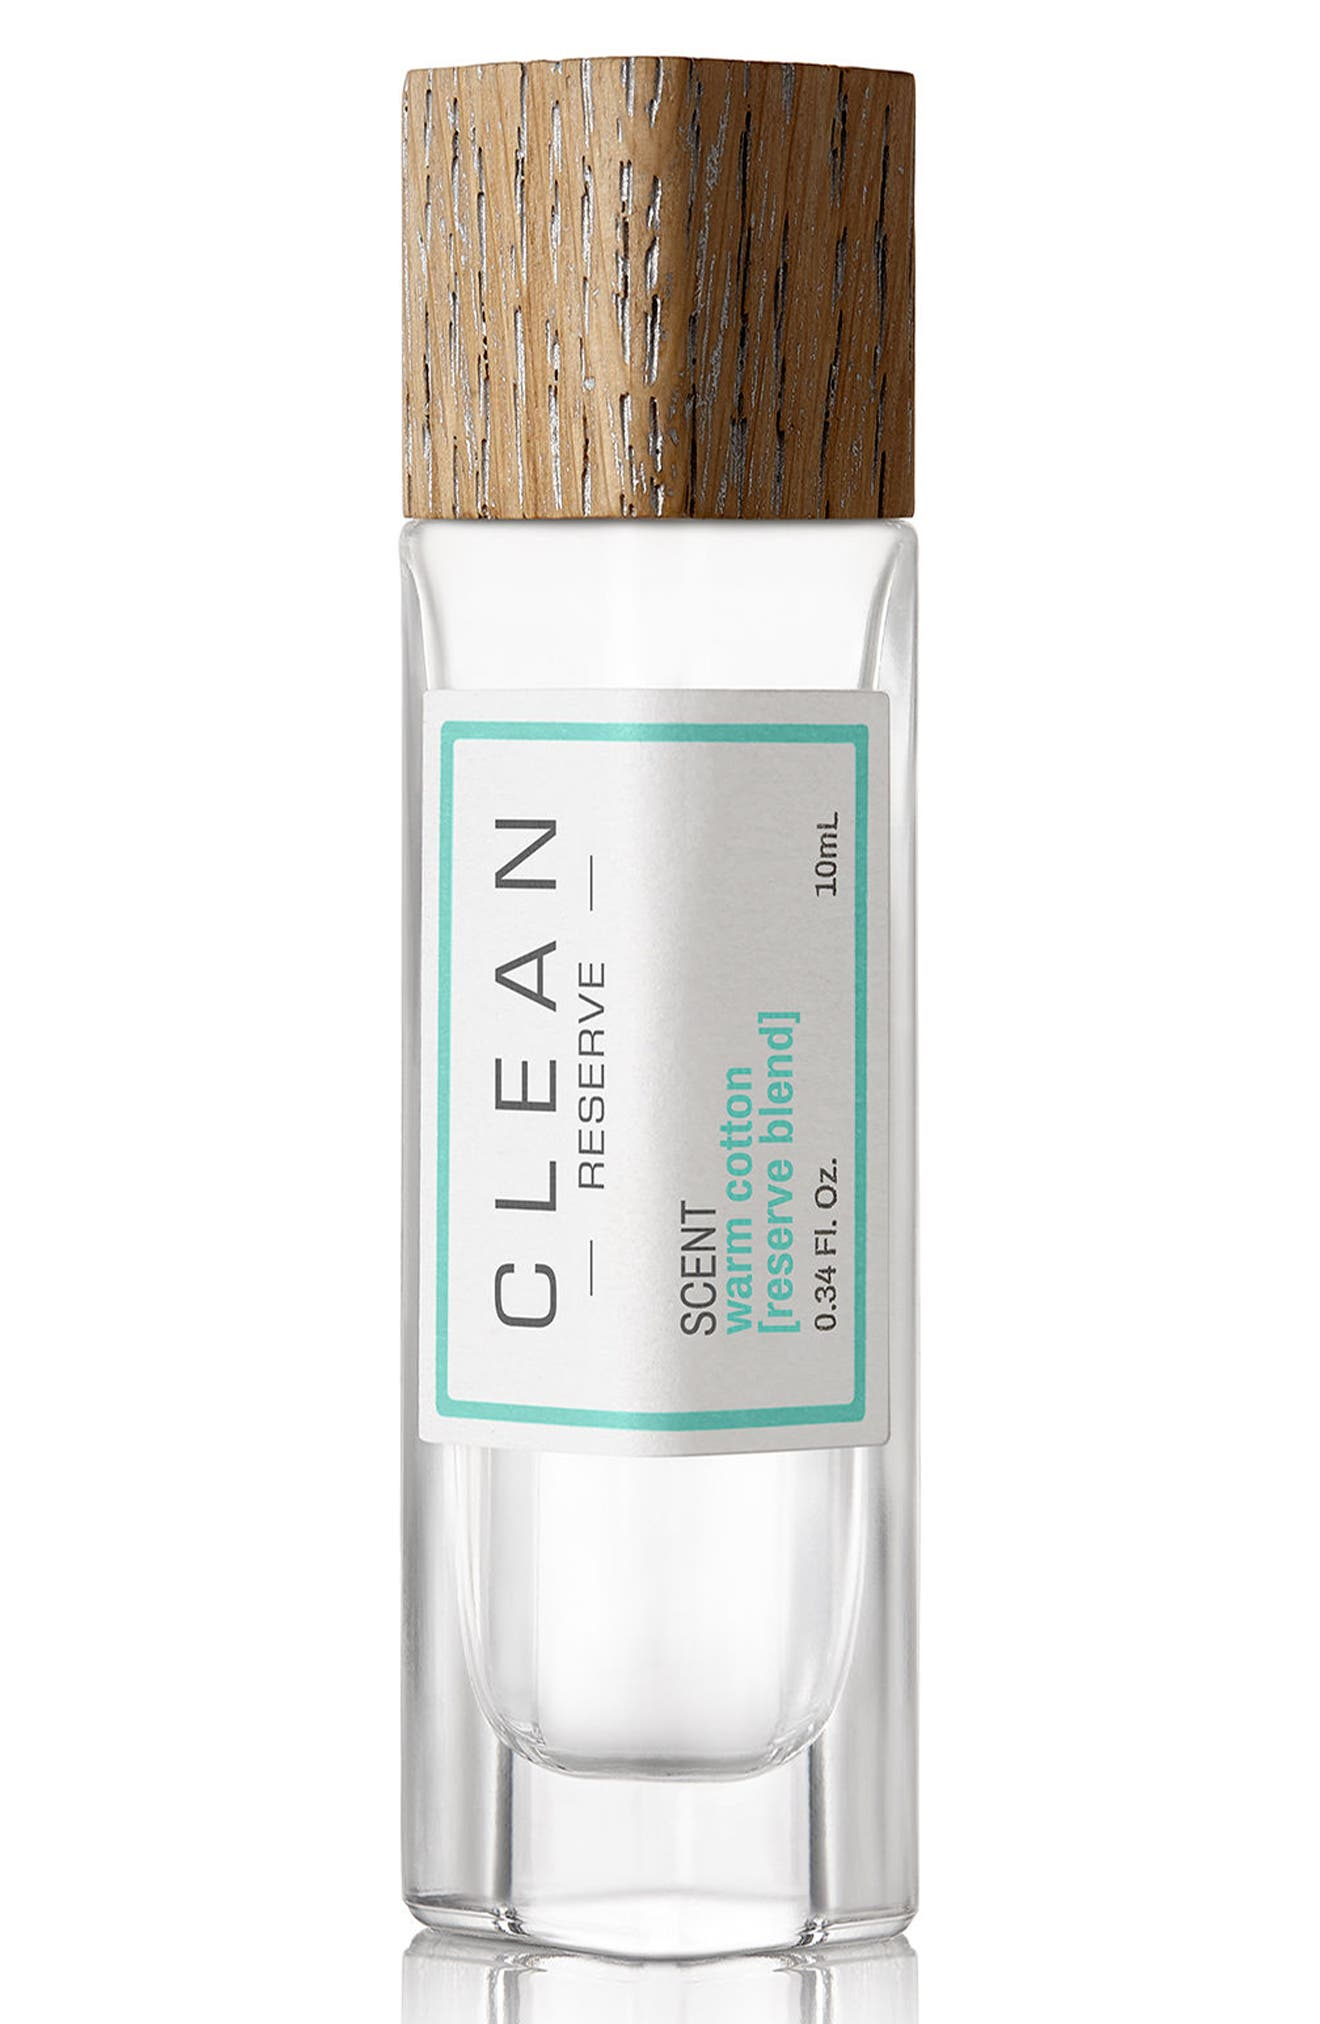 Clean Reserve Reserve Blend Warm Cotton Eau de Parfum Pen Spray